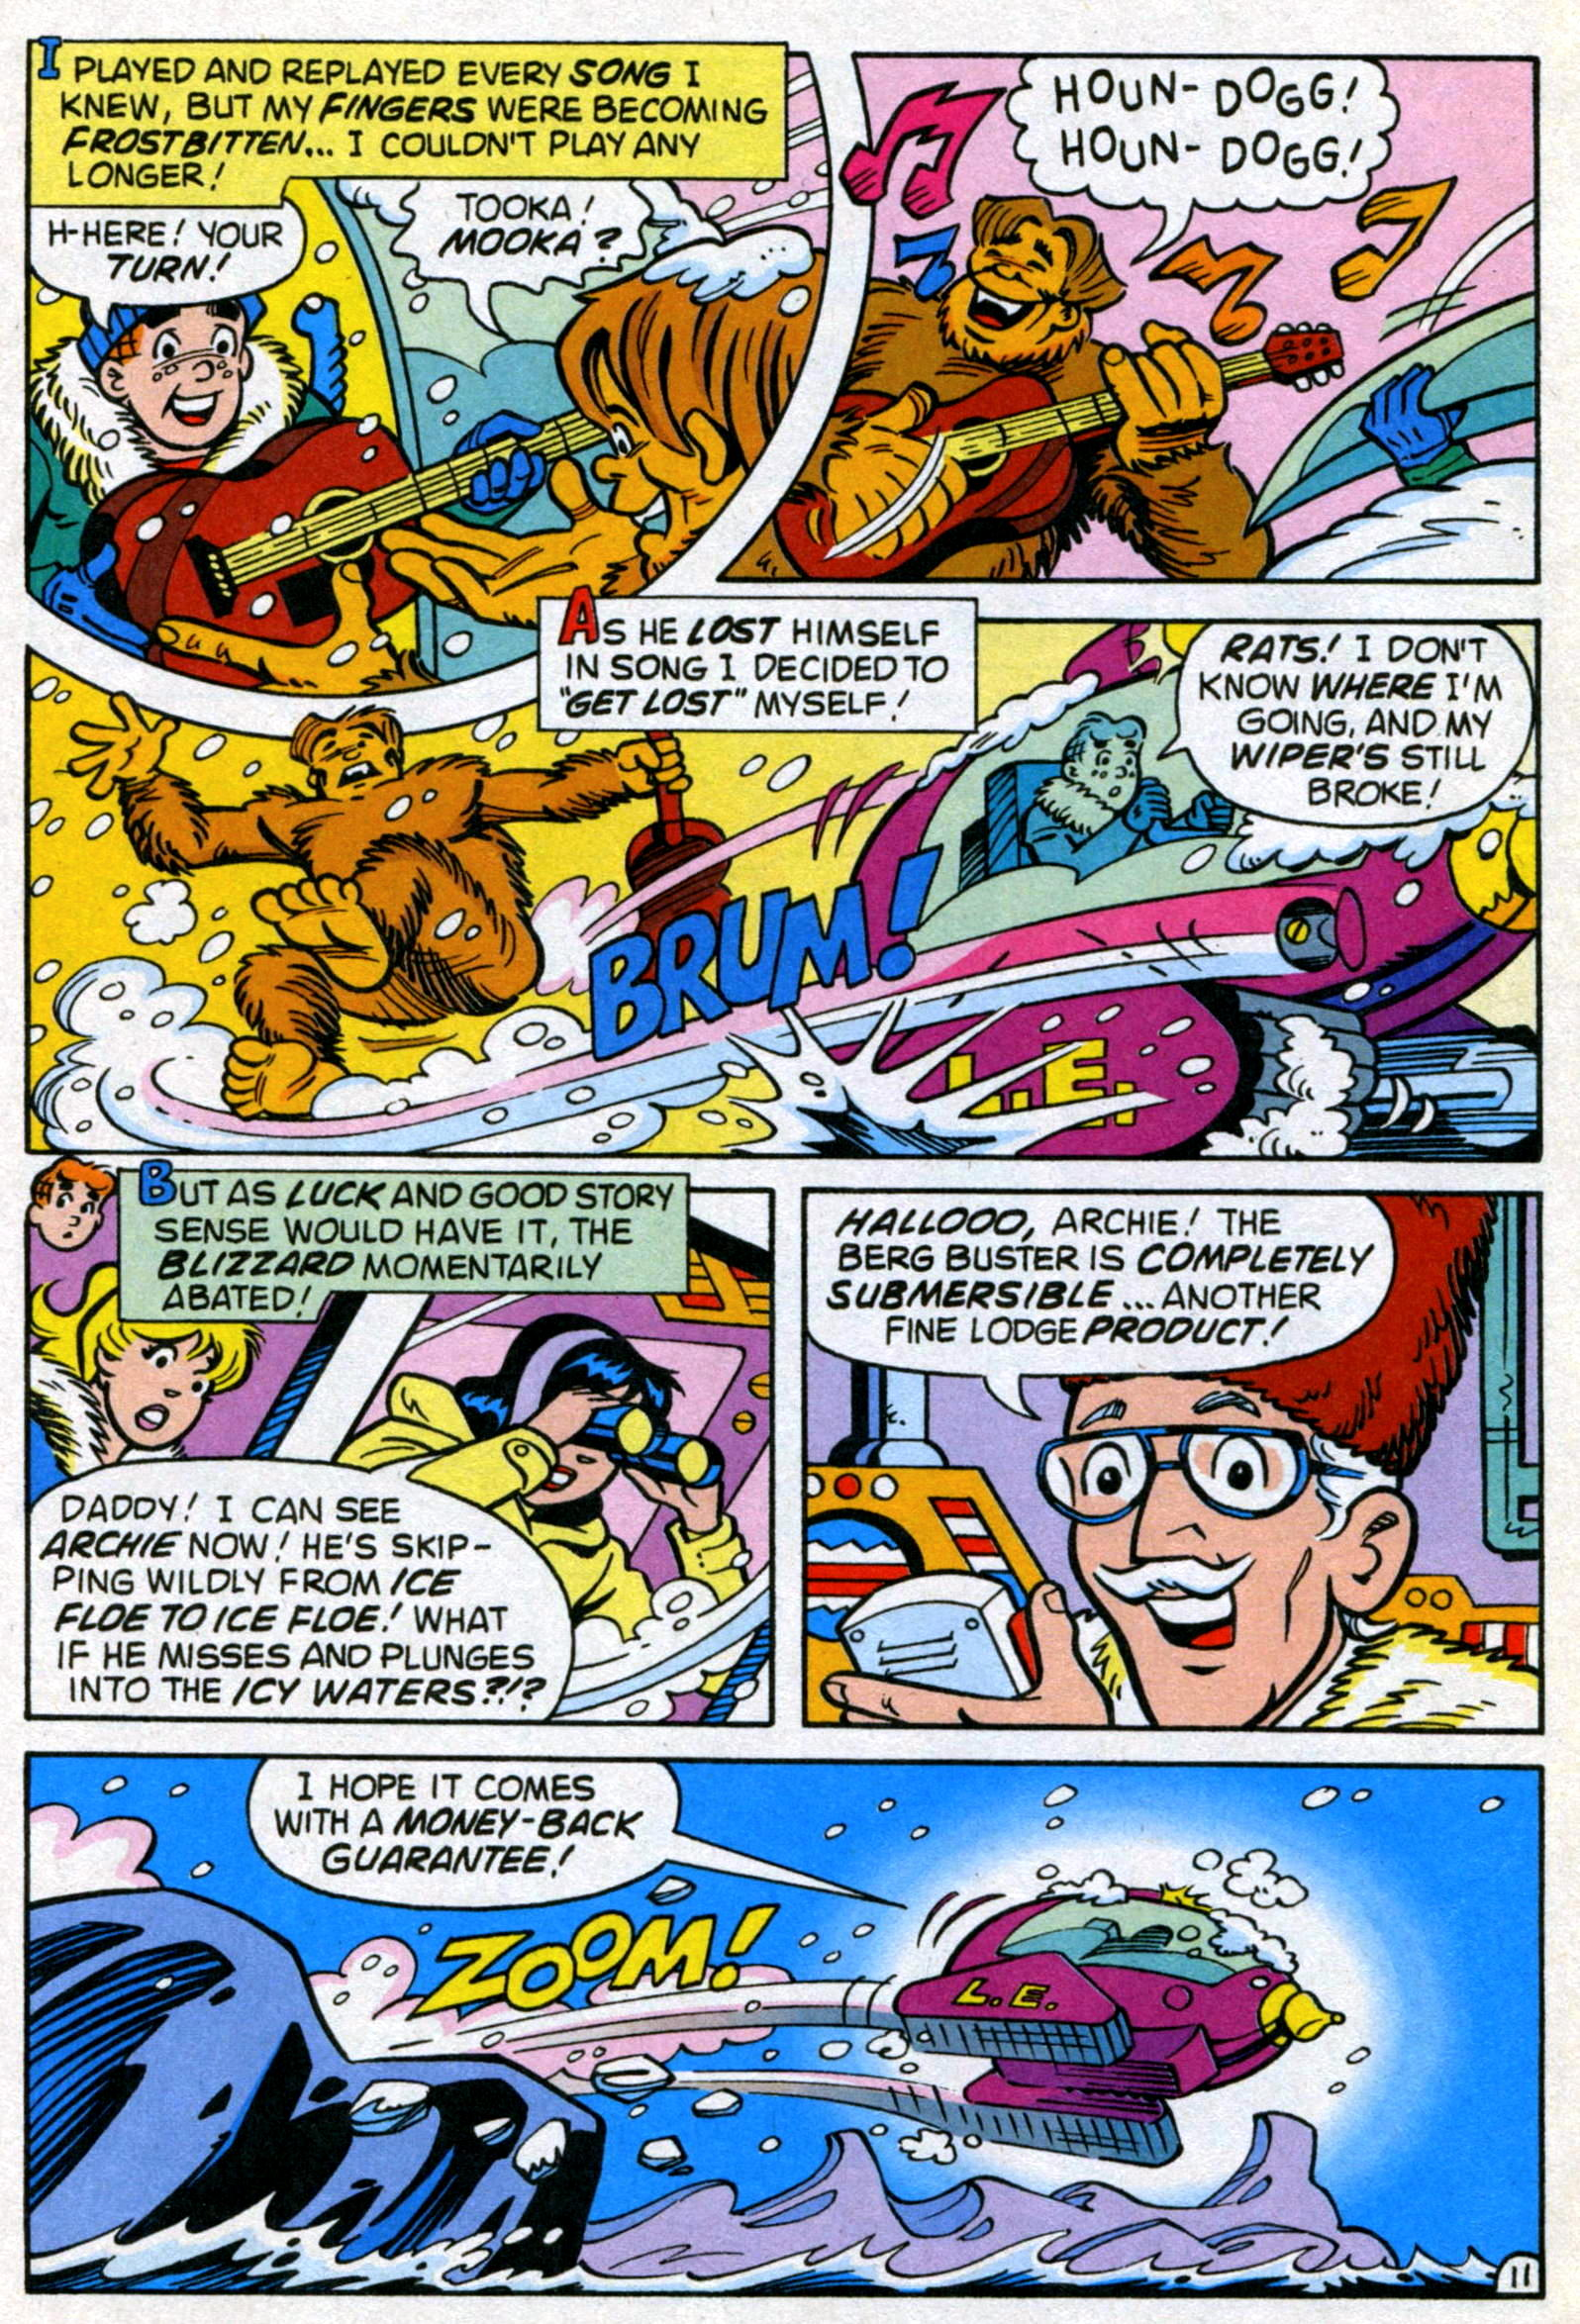 Read online World of Archie comic -  Issue #22 - 14